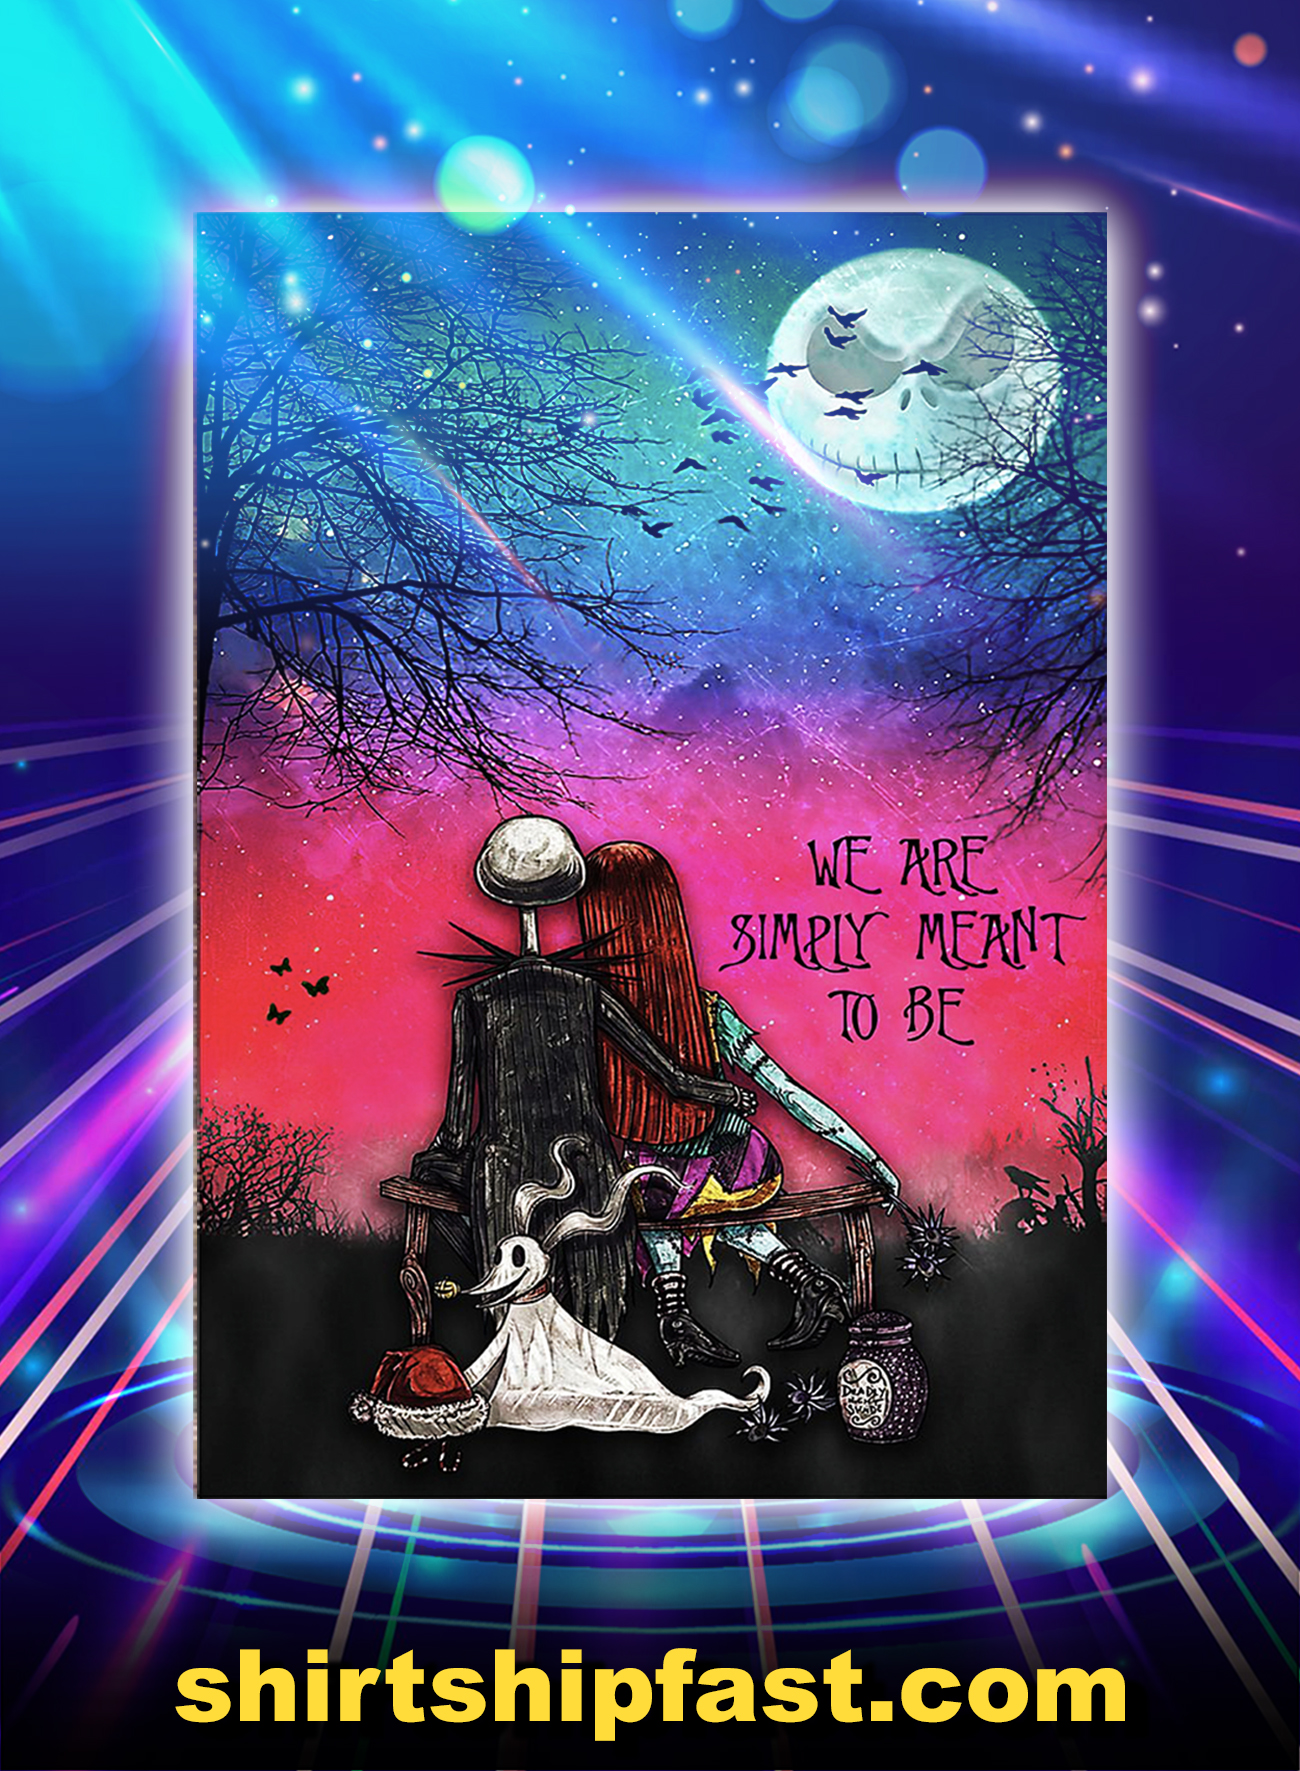 Jack and sally we are simply meant to be poster - A1